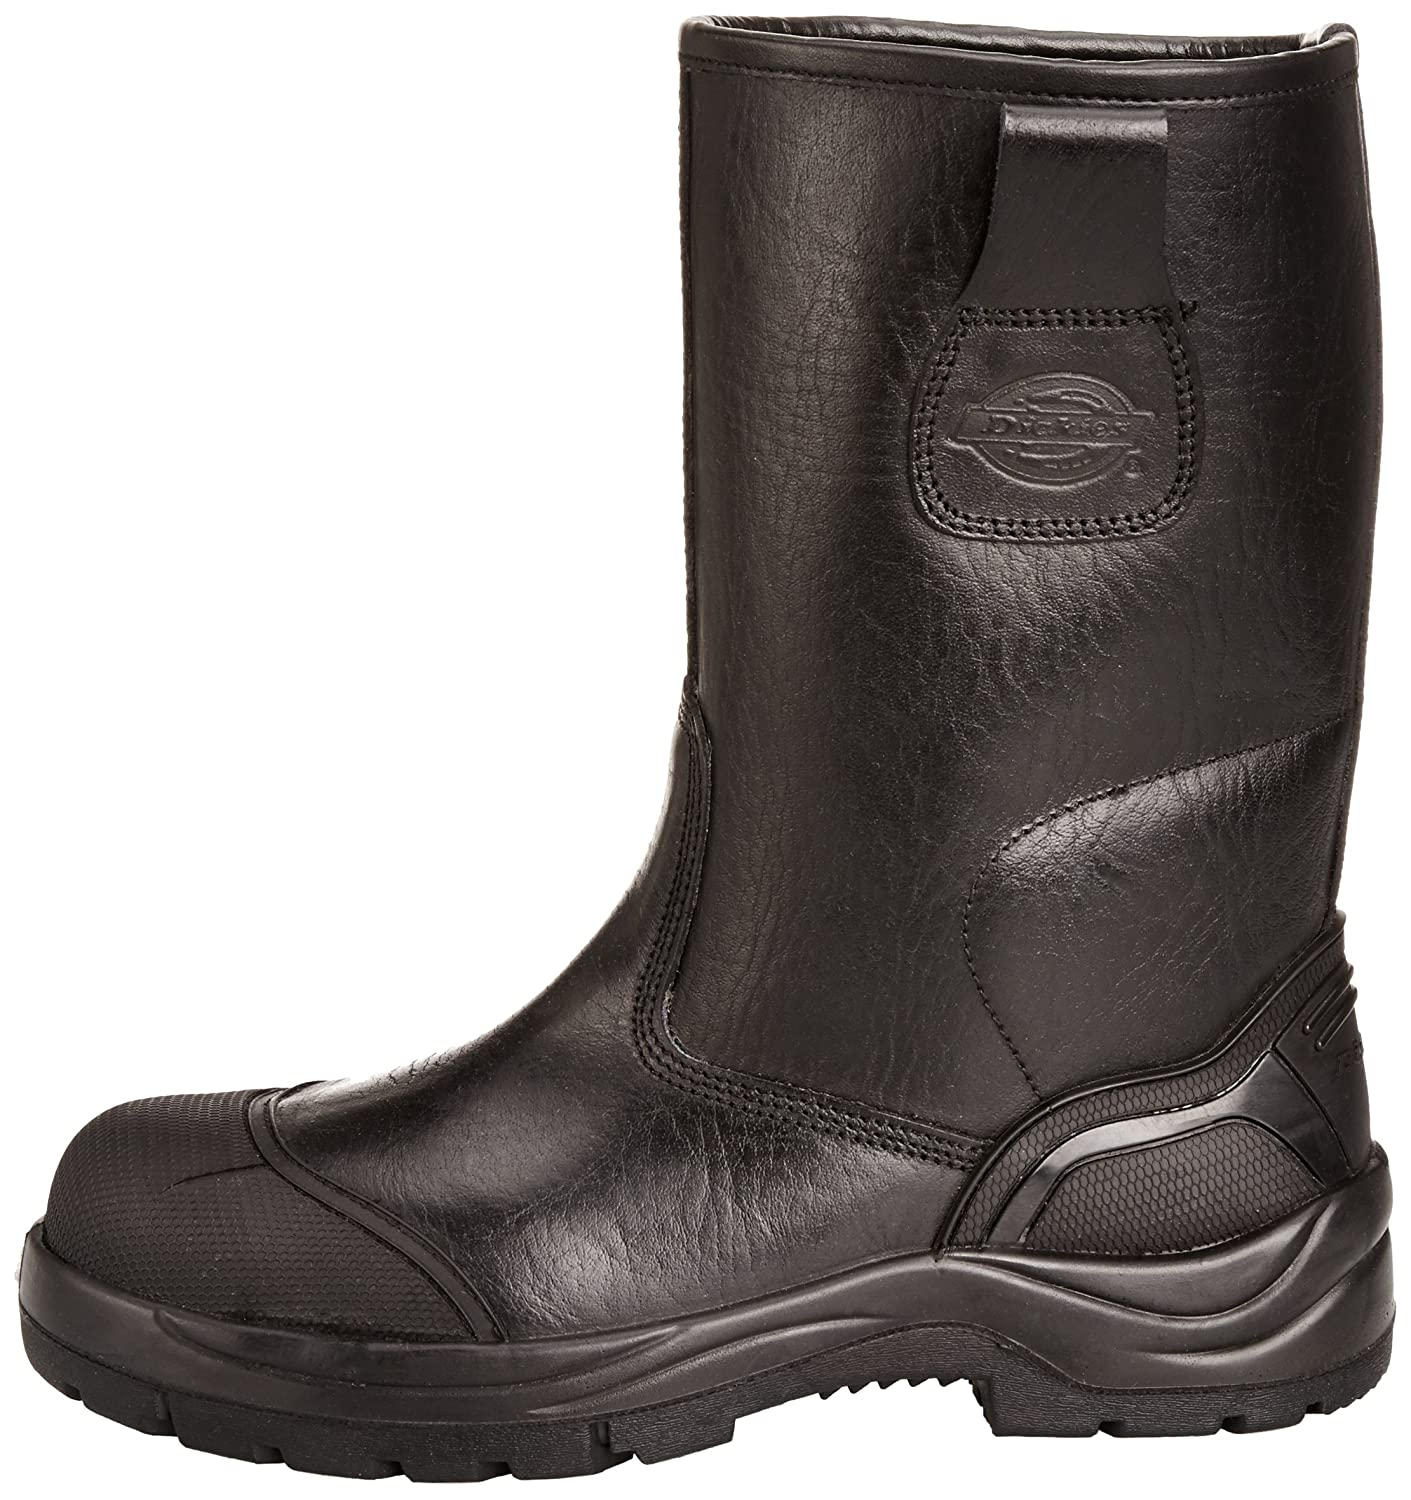 Dickies Mens Coweta S3 Safety Boots FD9211 Black 8 UK 42 EU Regular  Amazoncouk Business Industry  Science